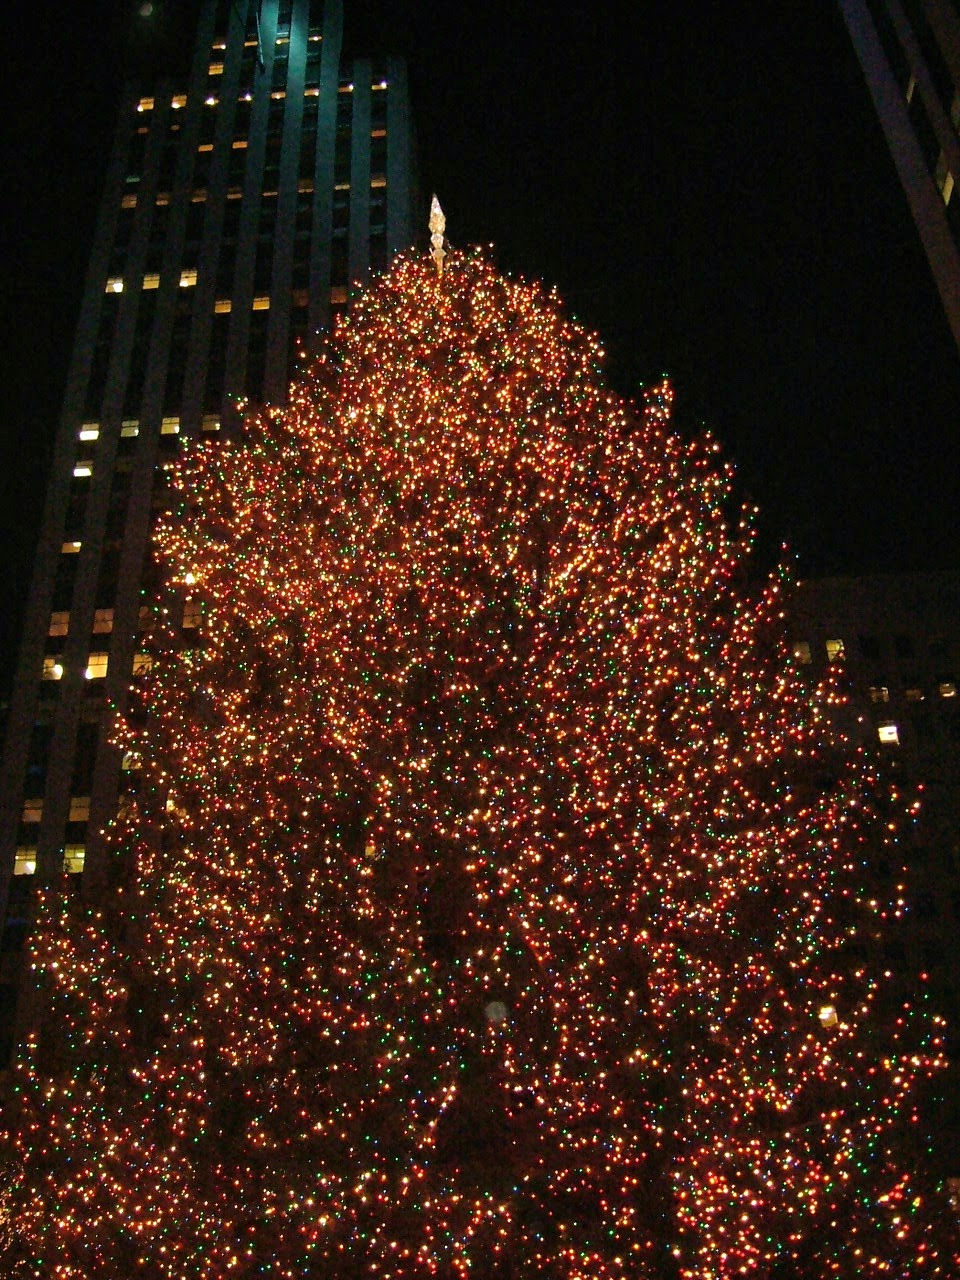 Wedding Planning In New York New York the Christmas tree at the Rockafella Centre